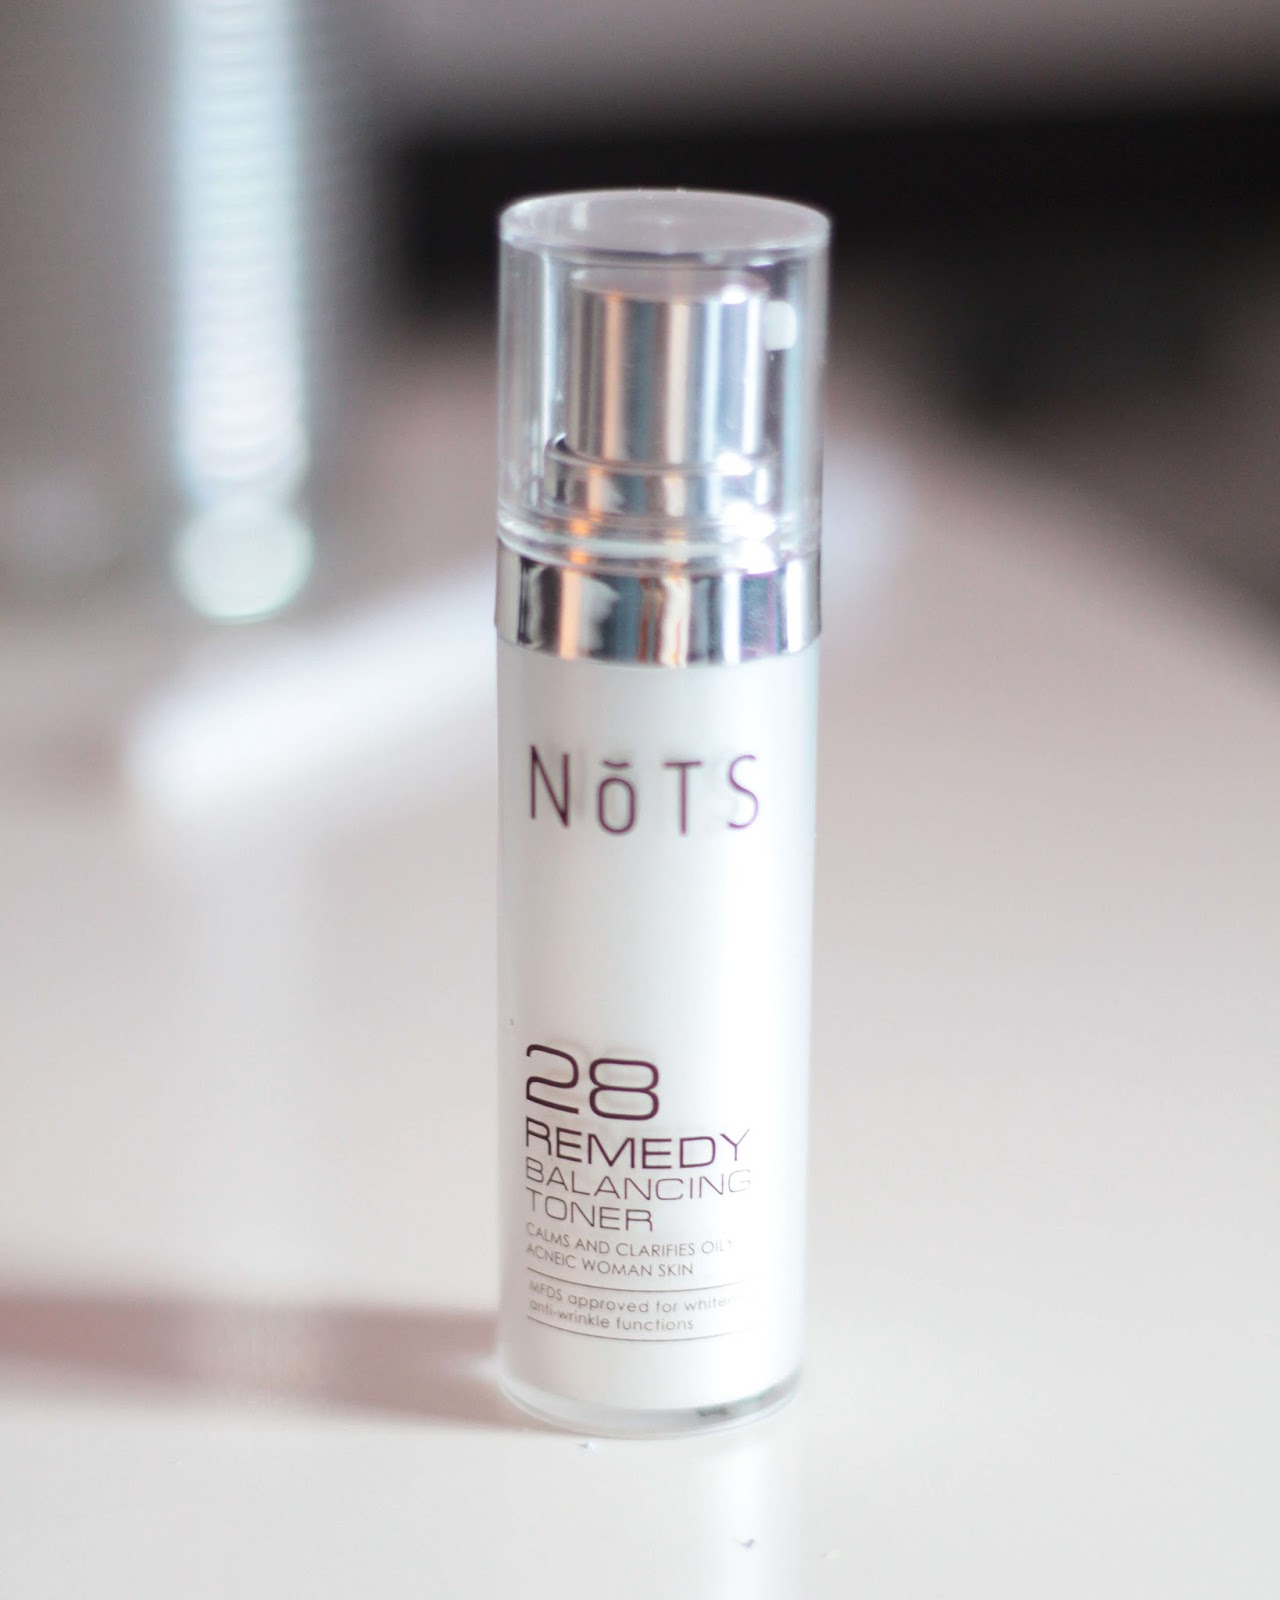 NoTS 28 Remedy Balancing Toner review